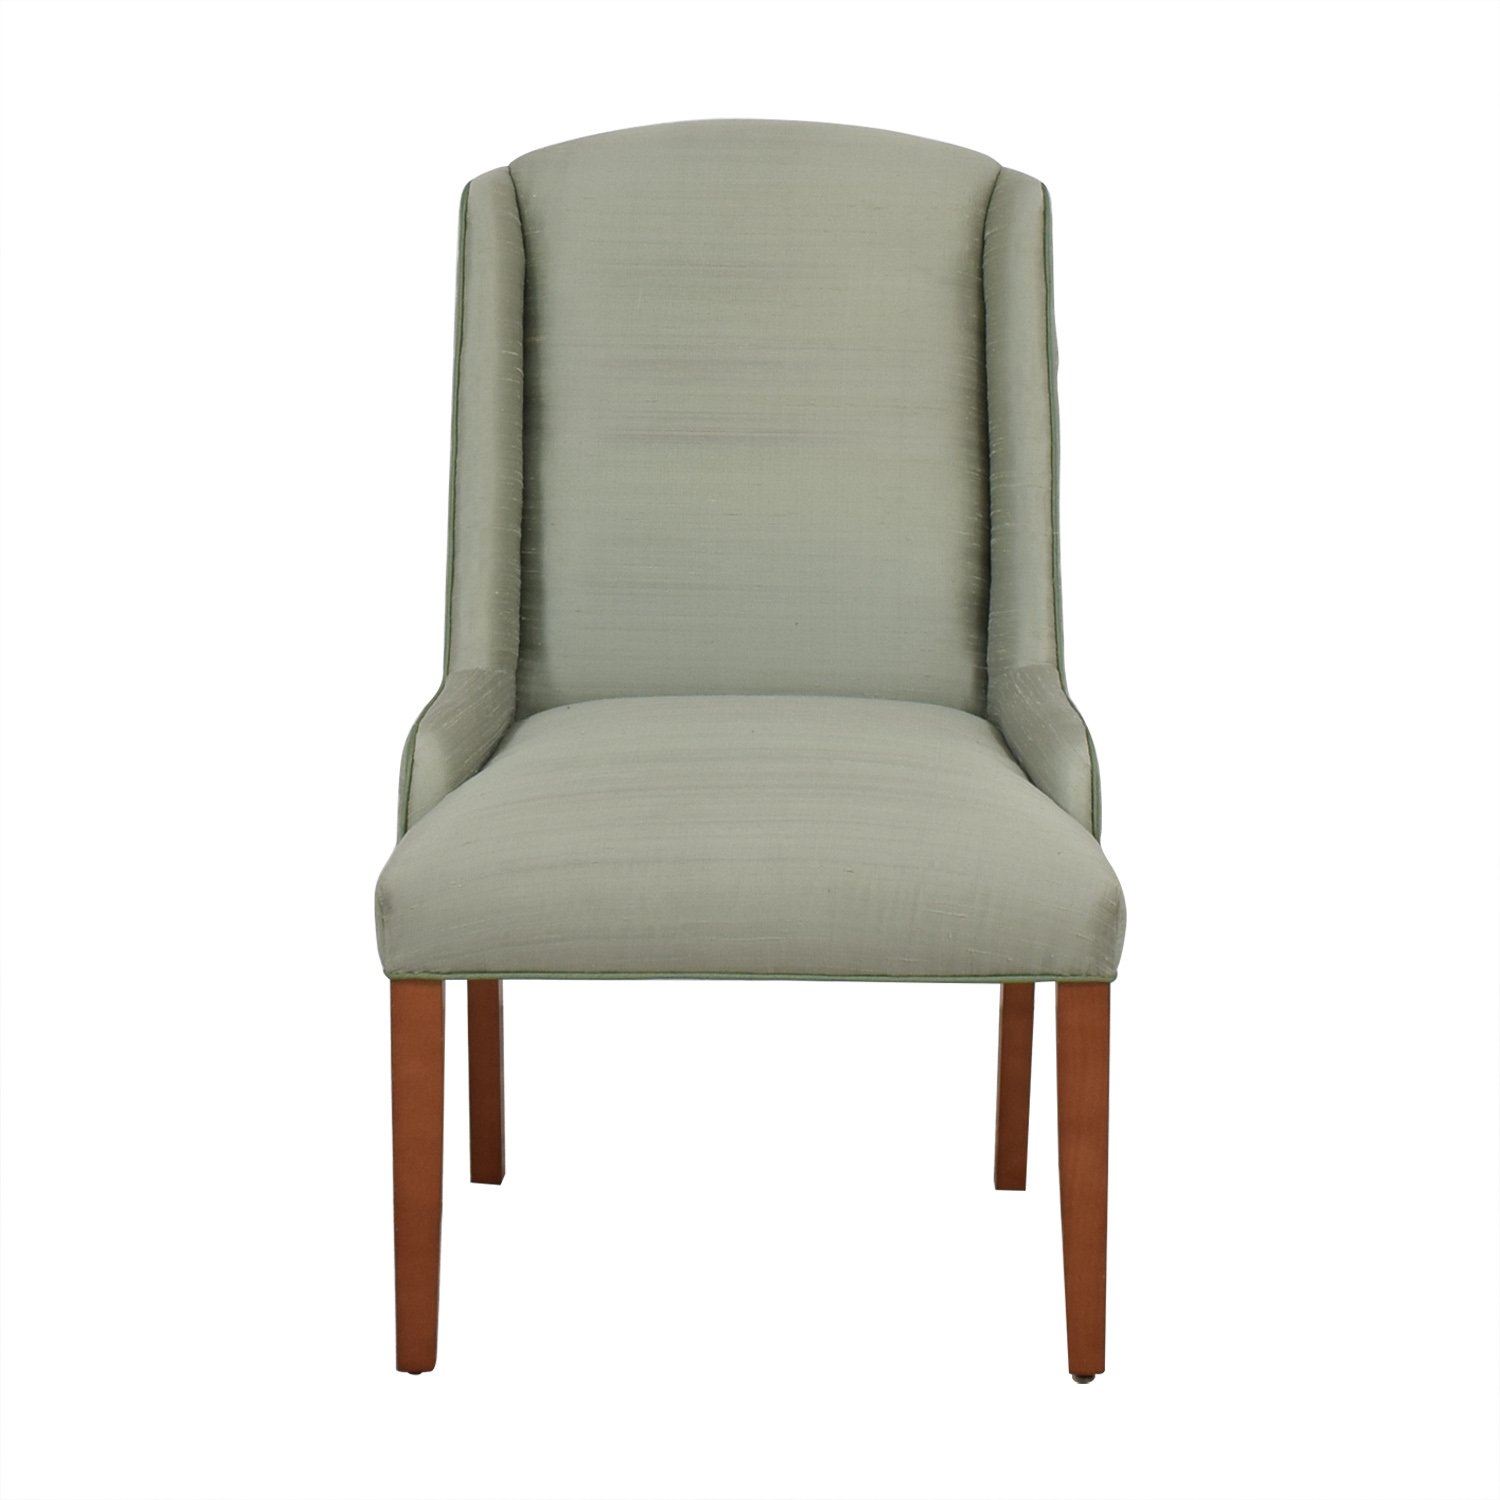 Arm Chair with Lumbar Pillow / Accent Chairs